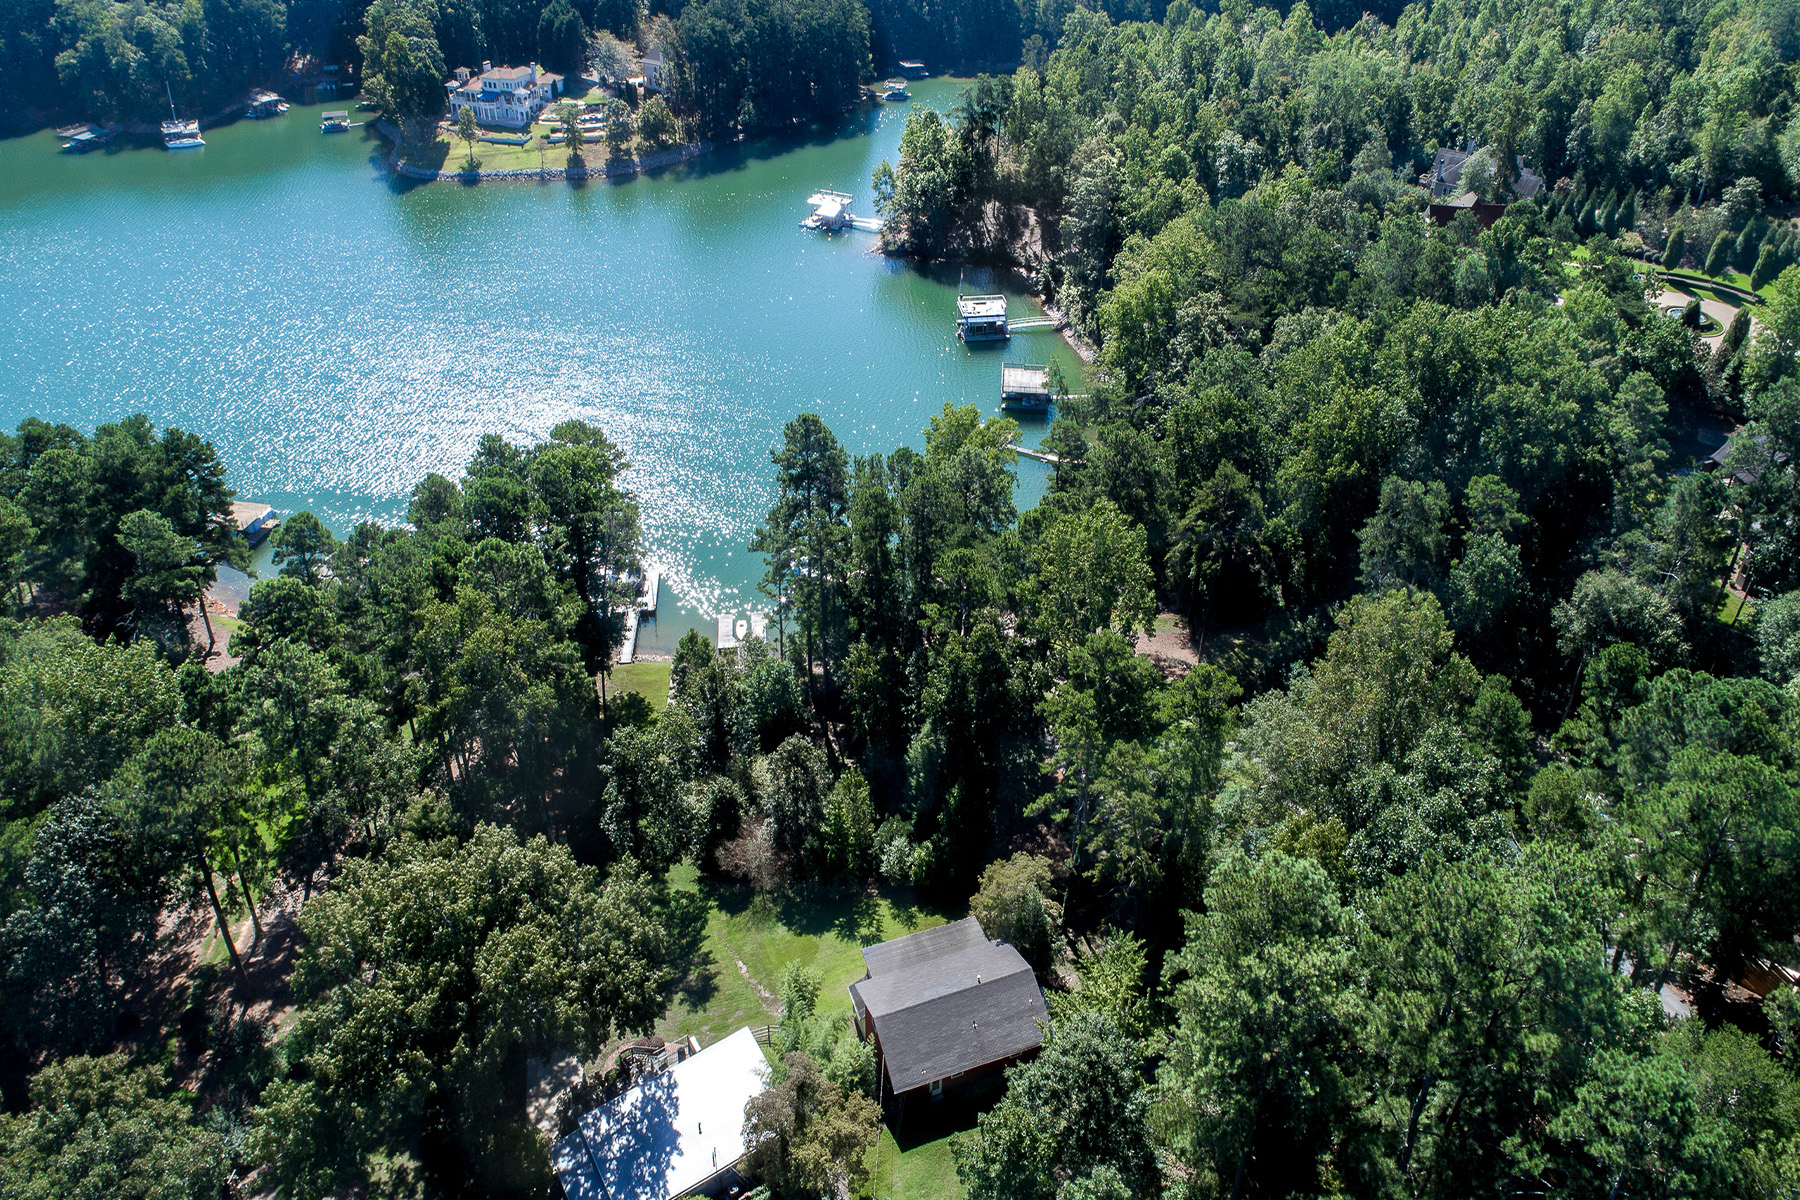 Single Family Homes for Sale at Prime Lake Lanier Location! Renovate Or Build New! 6579 Garrett Road Buford, Georgia 30518 United States